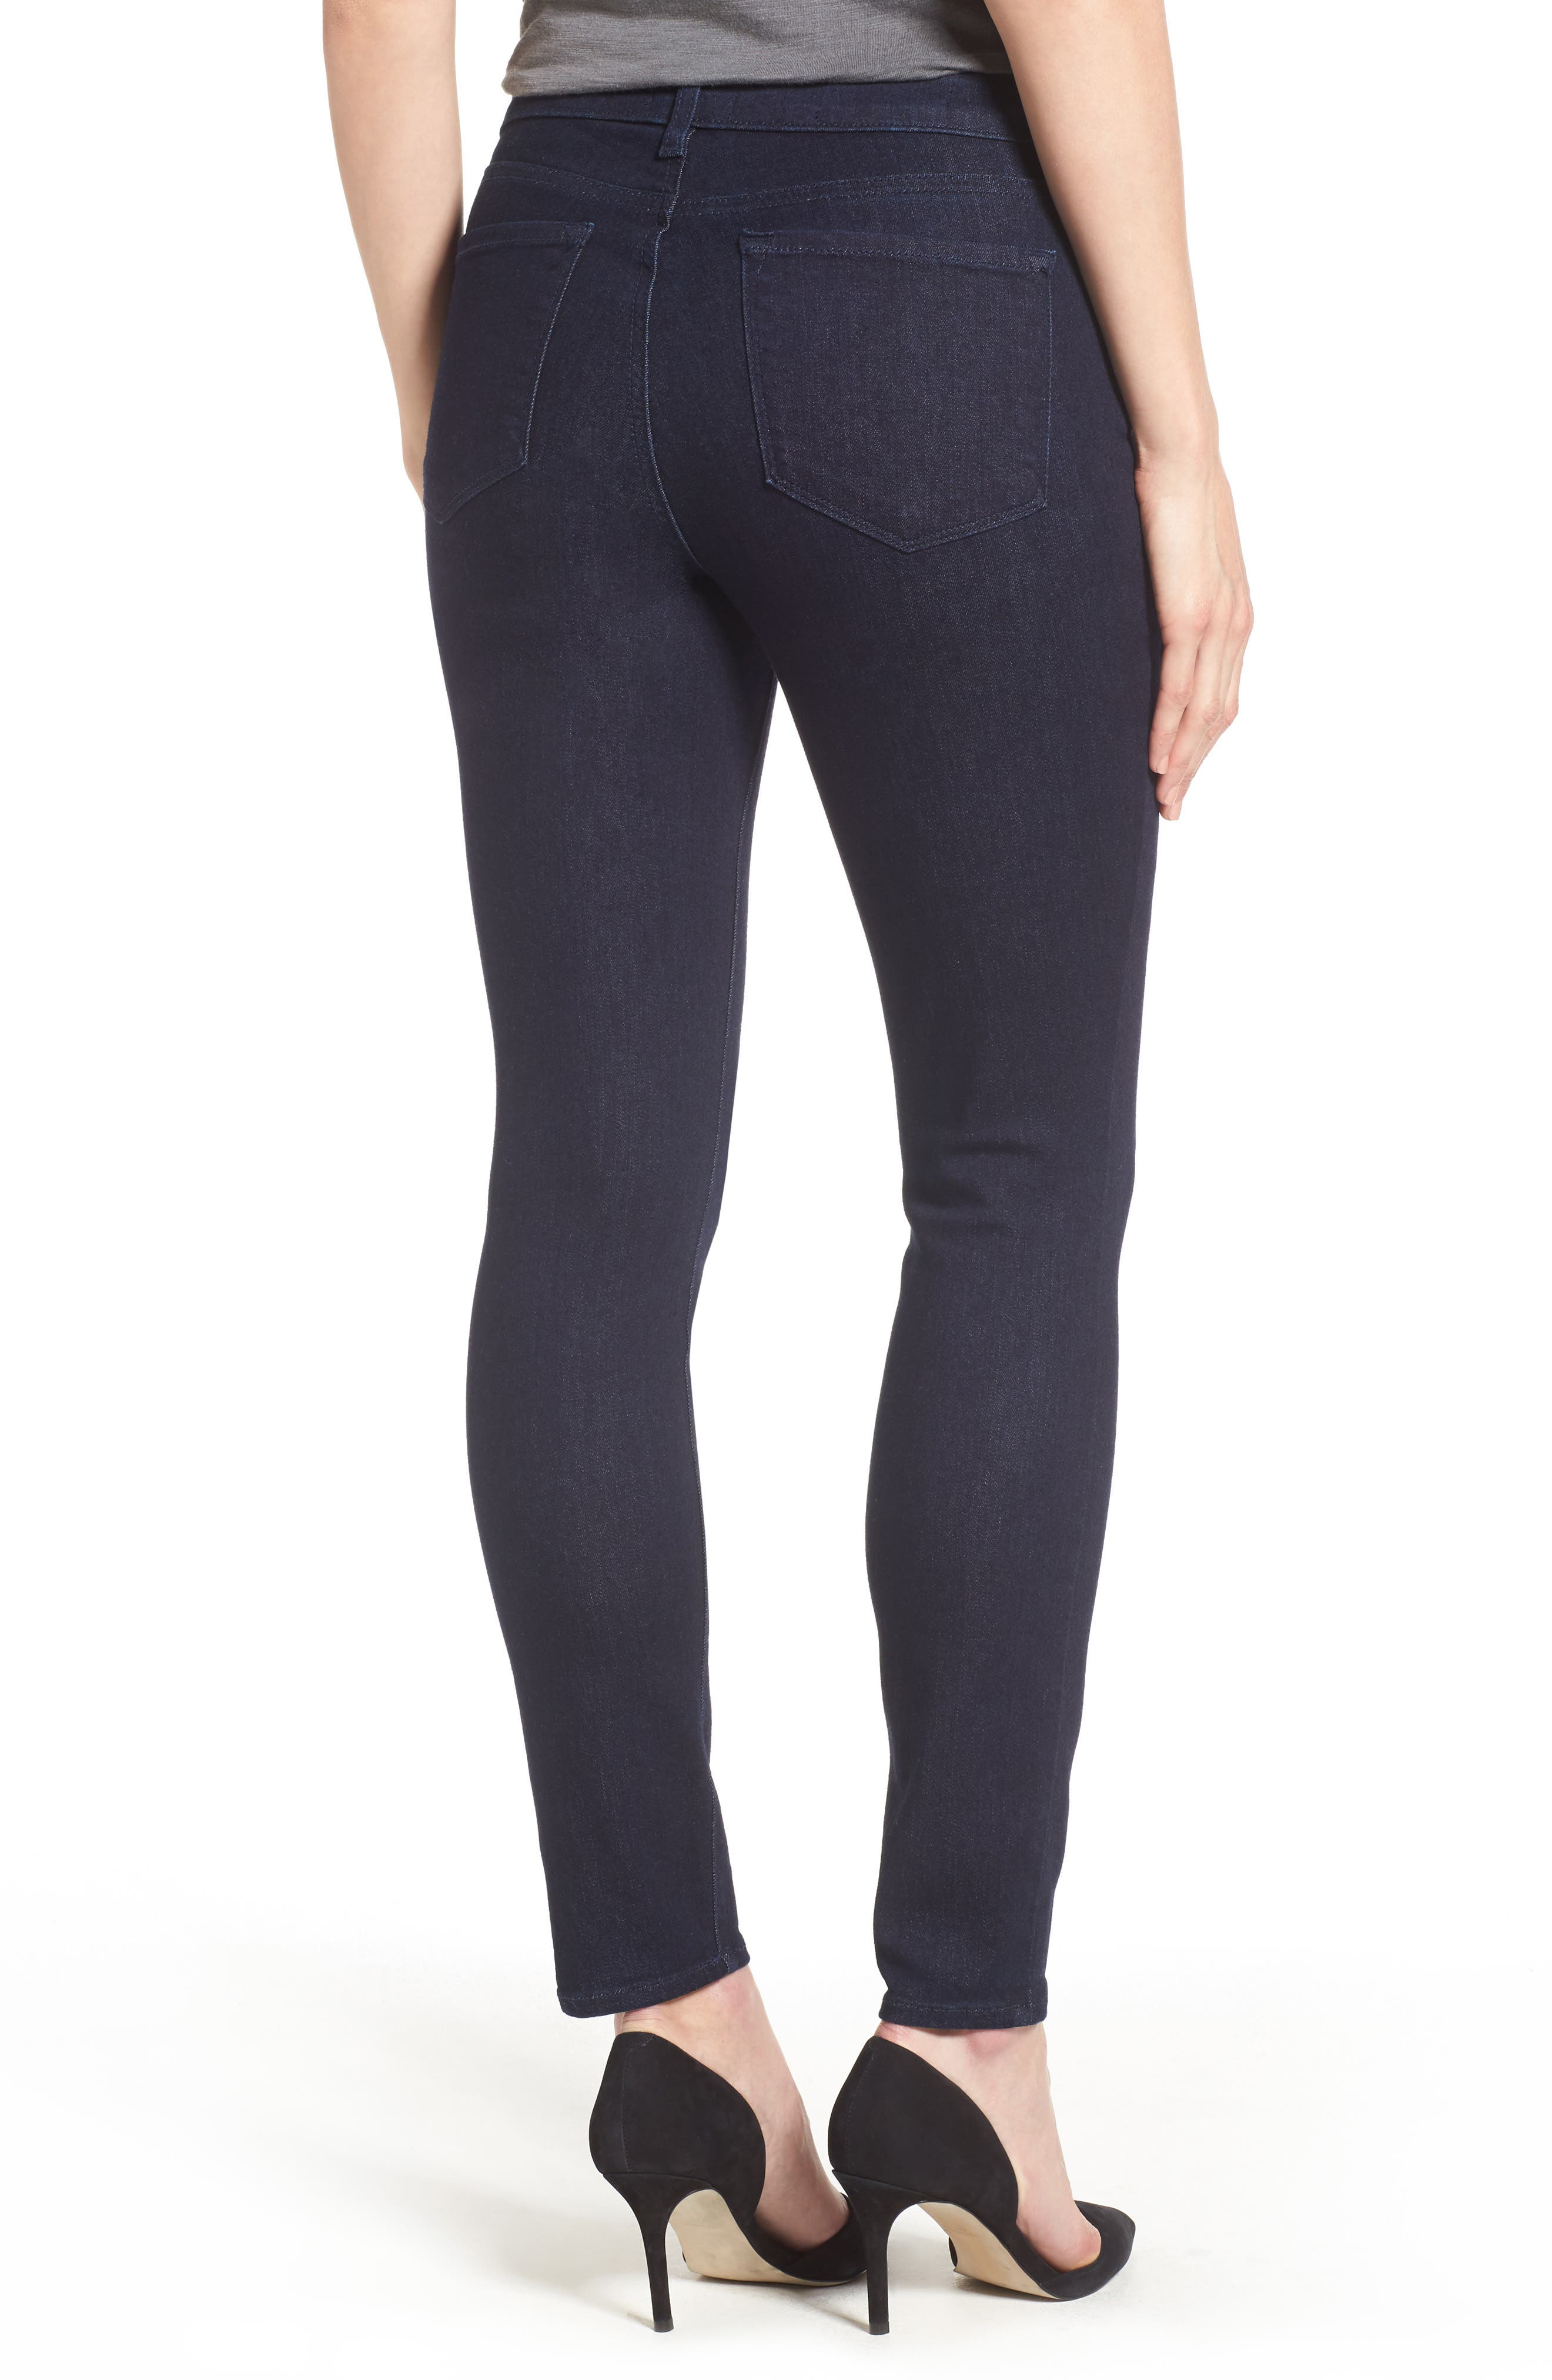 Ami High Waist Stretch Skinny Jeans,                             Alternate thumbnail 2, color,                             RINSE